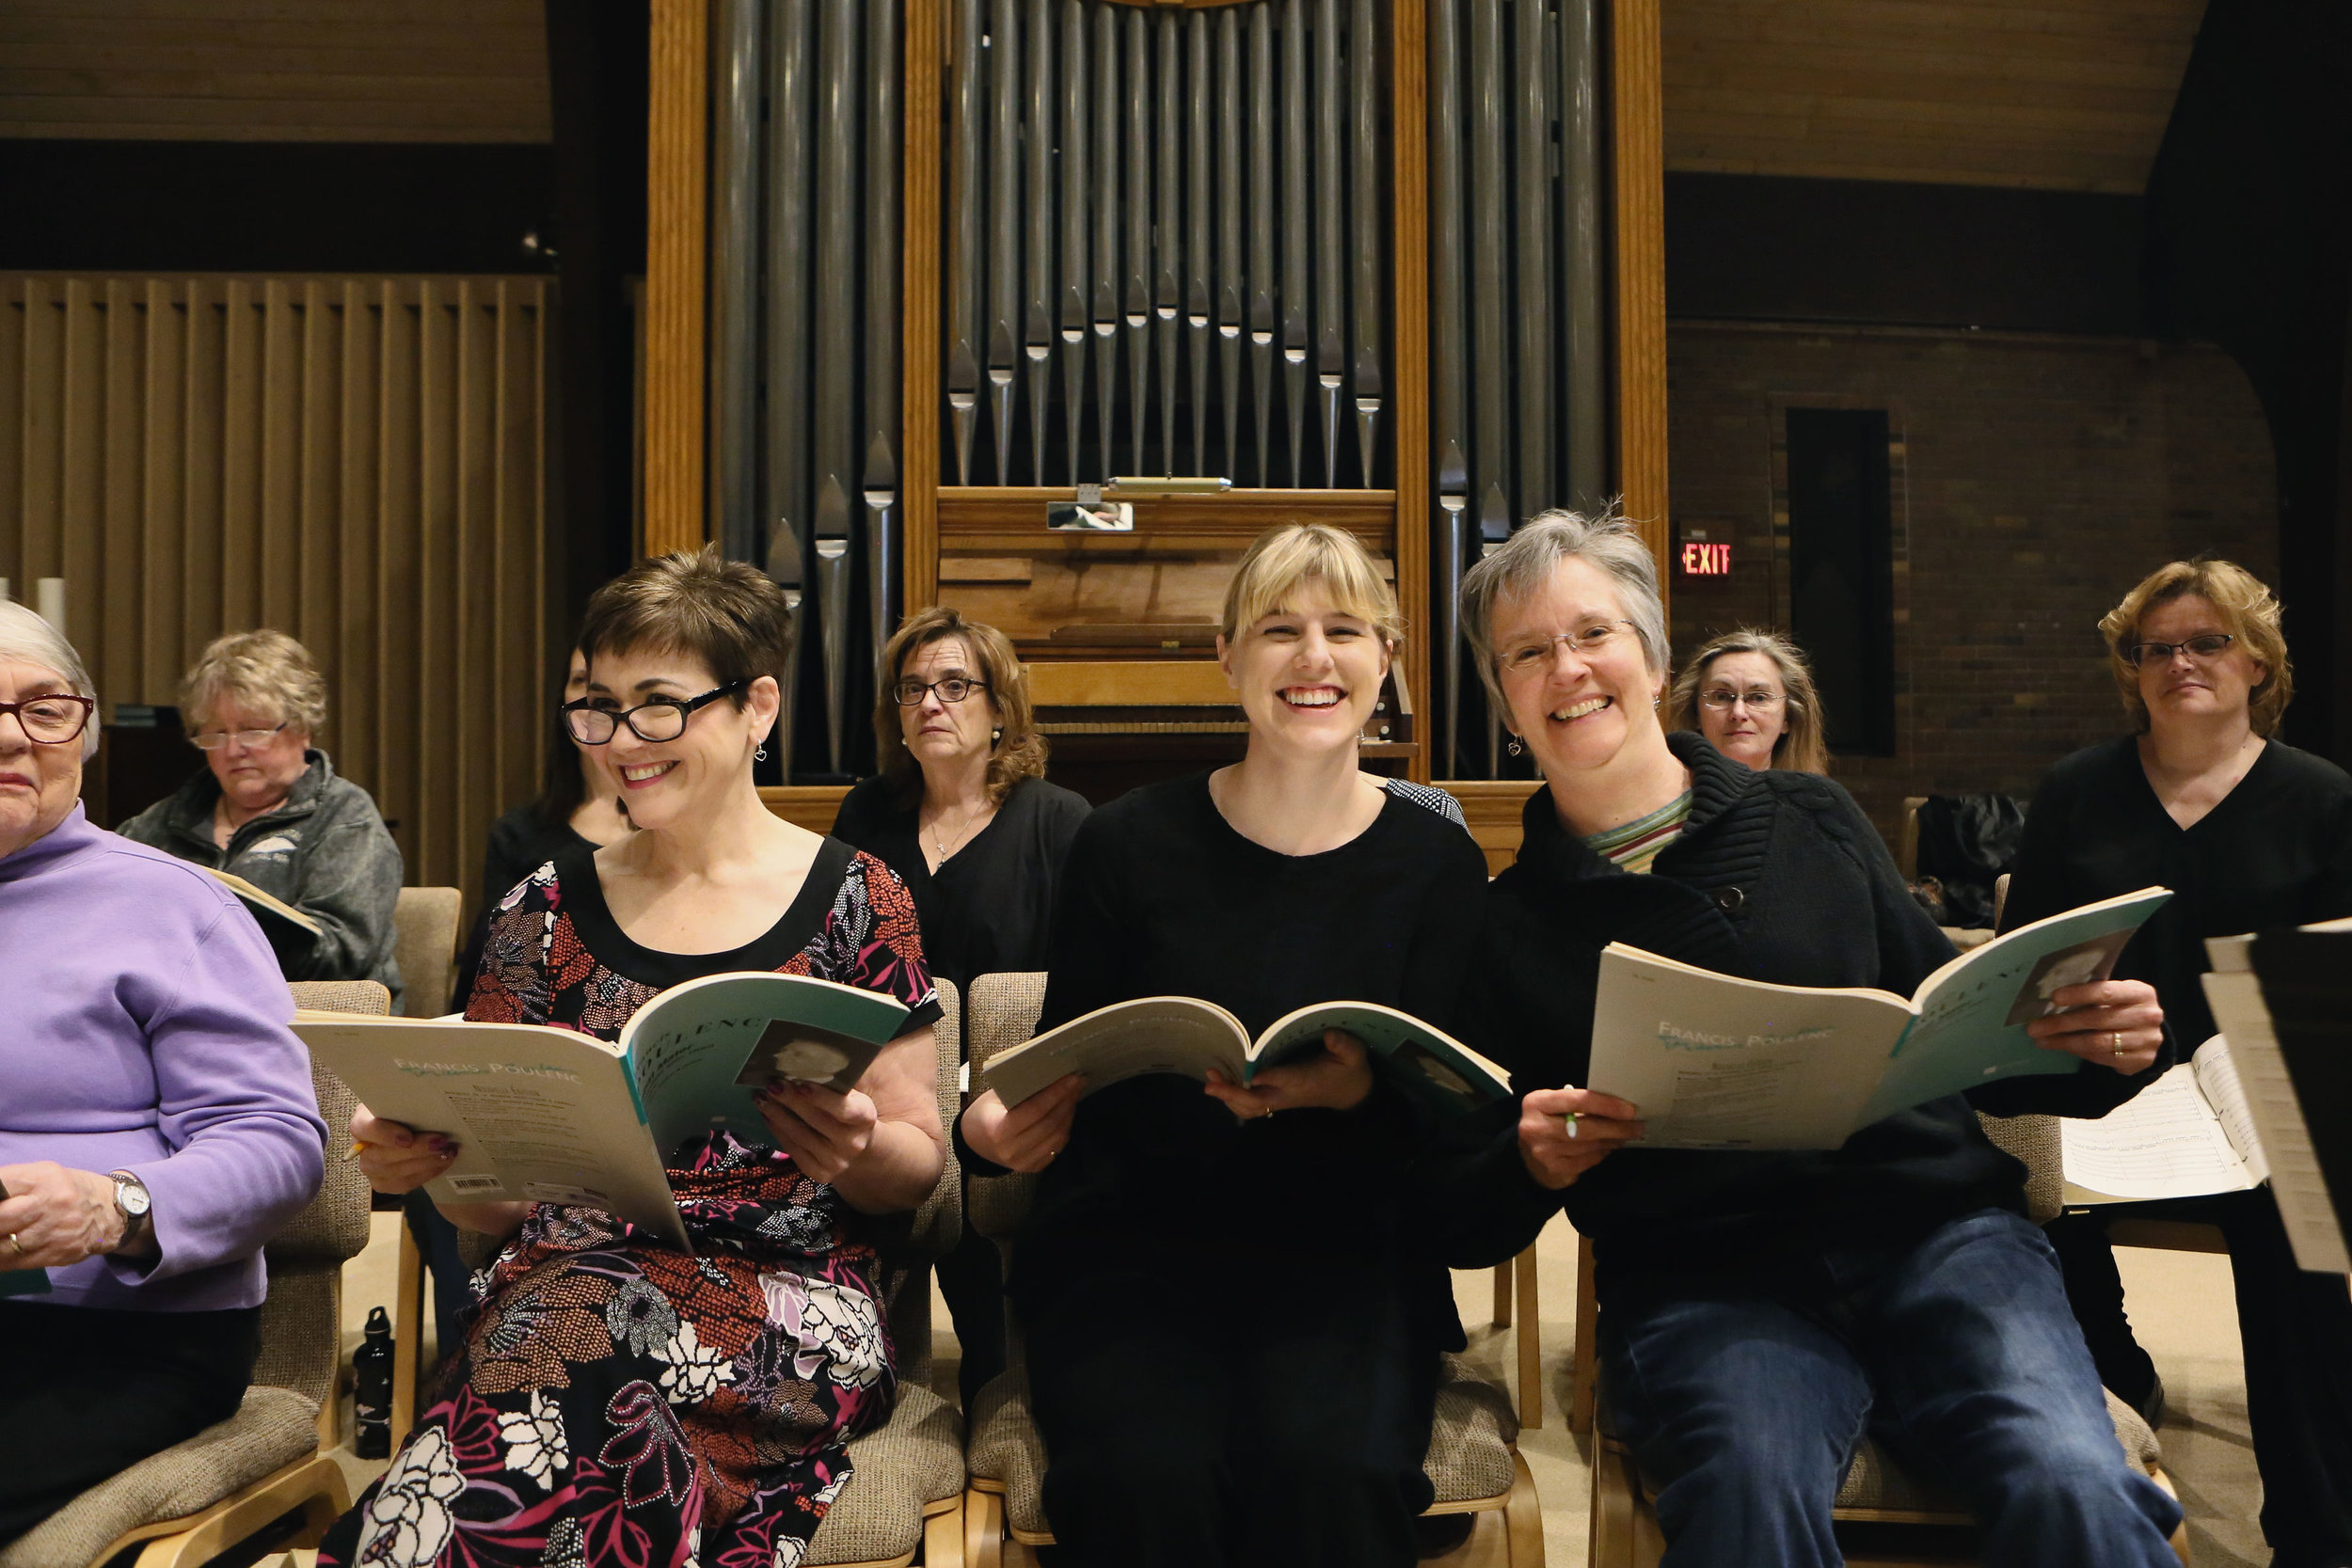 SUPPORT OUR MUSIC - You can help us bring joy to people's lives through choral music. Please support our 50th season with a donation today! View our 2019-2020 Season Supporters.